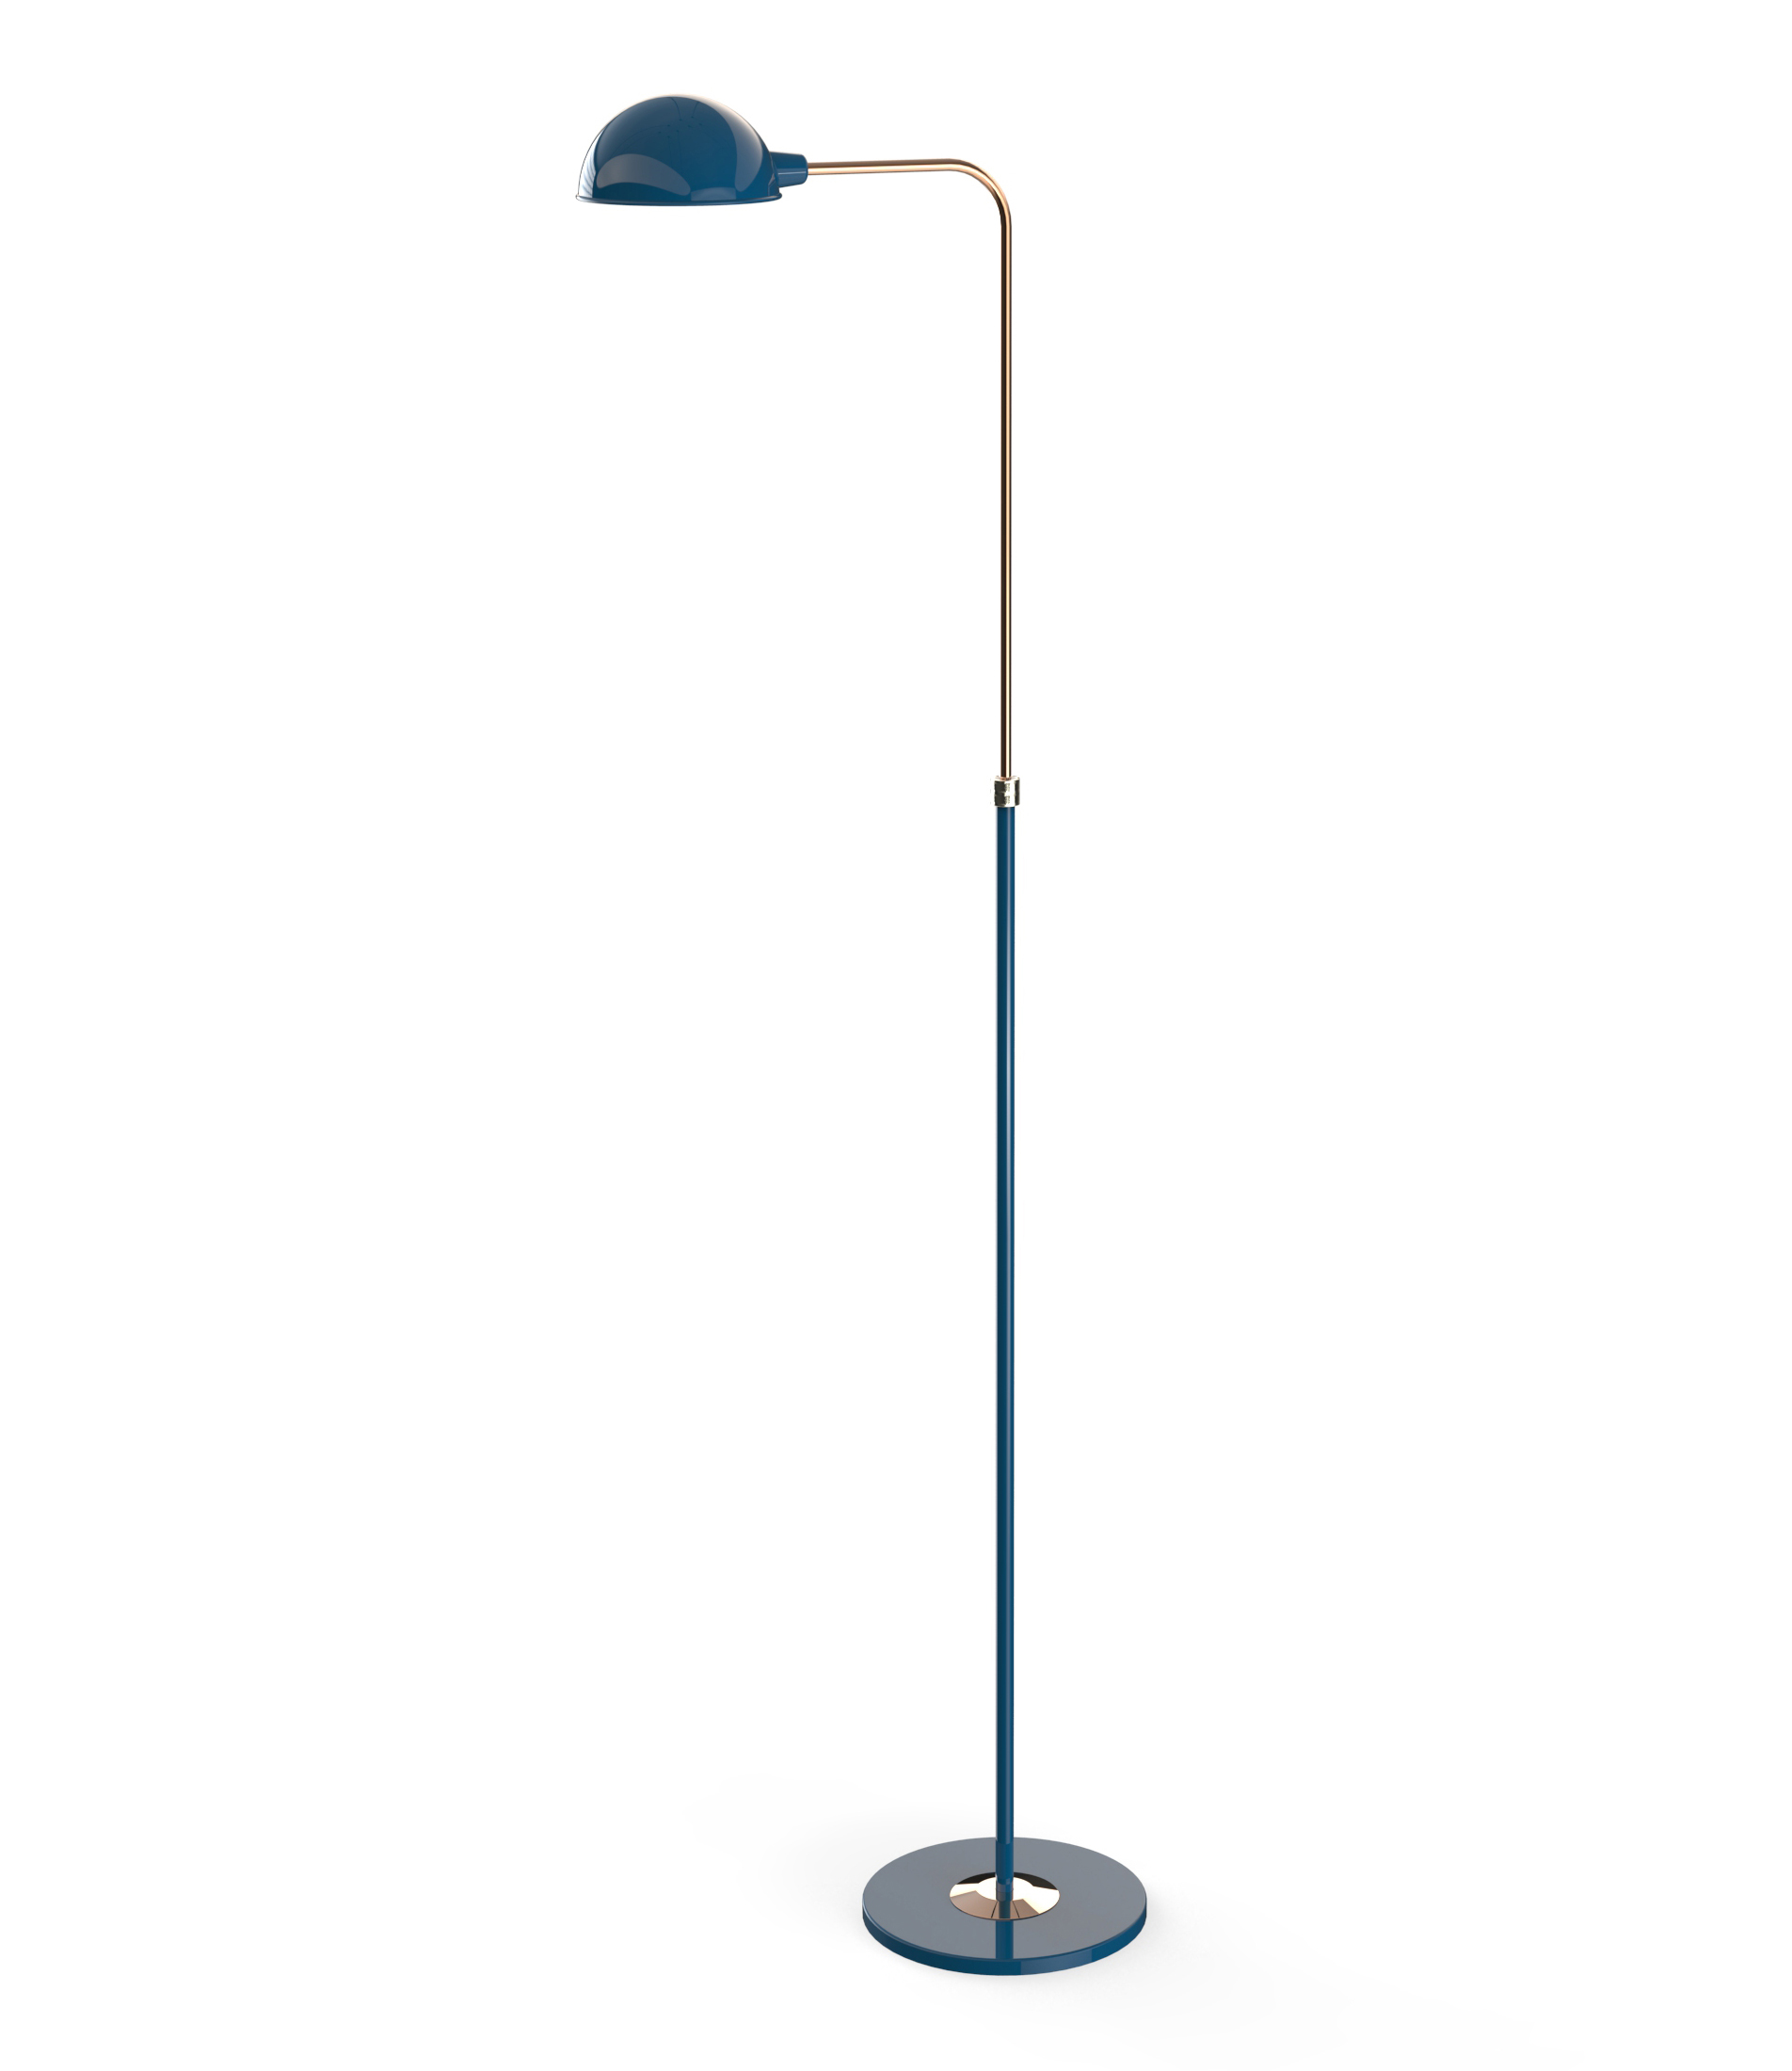 Stunning Modern Floor Lamps for Your Industrial Design (1)  Stunning Modern Floor Lamps for Your Industrial Design Stunning Modern Floor Lamps for Your Industrial Design 5